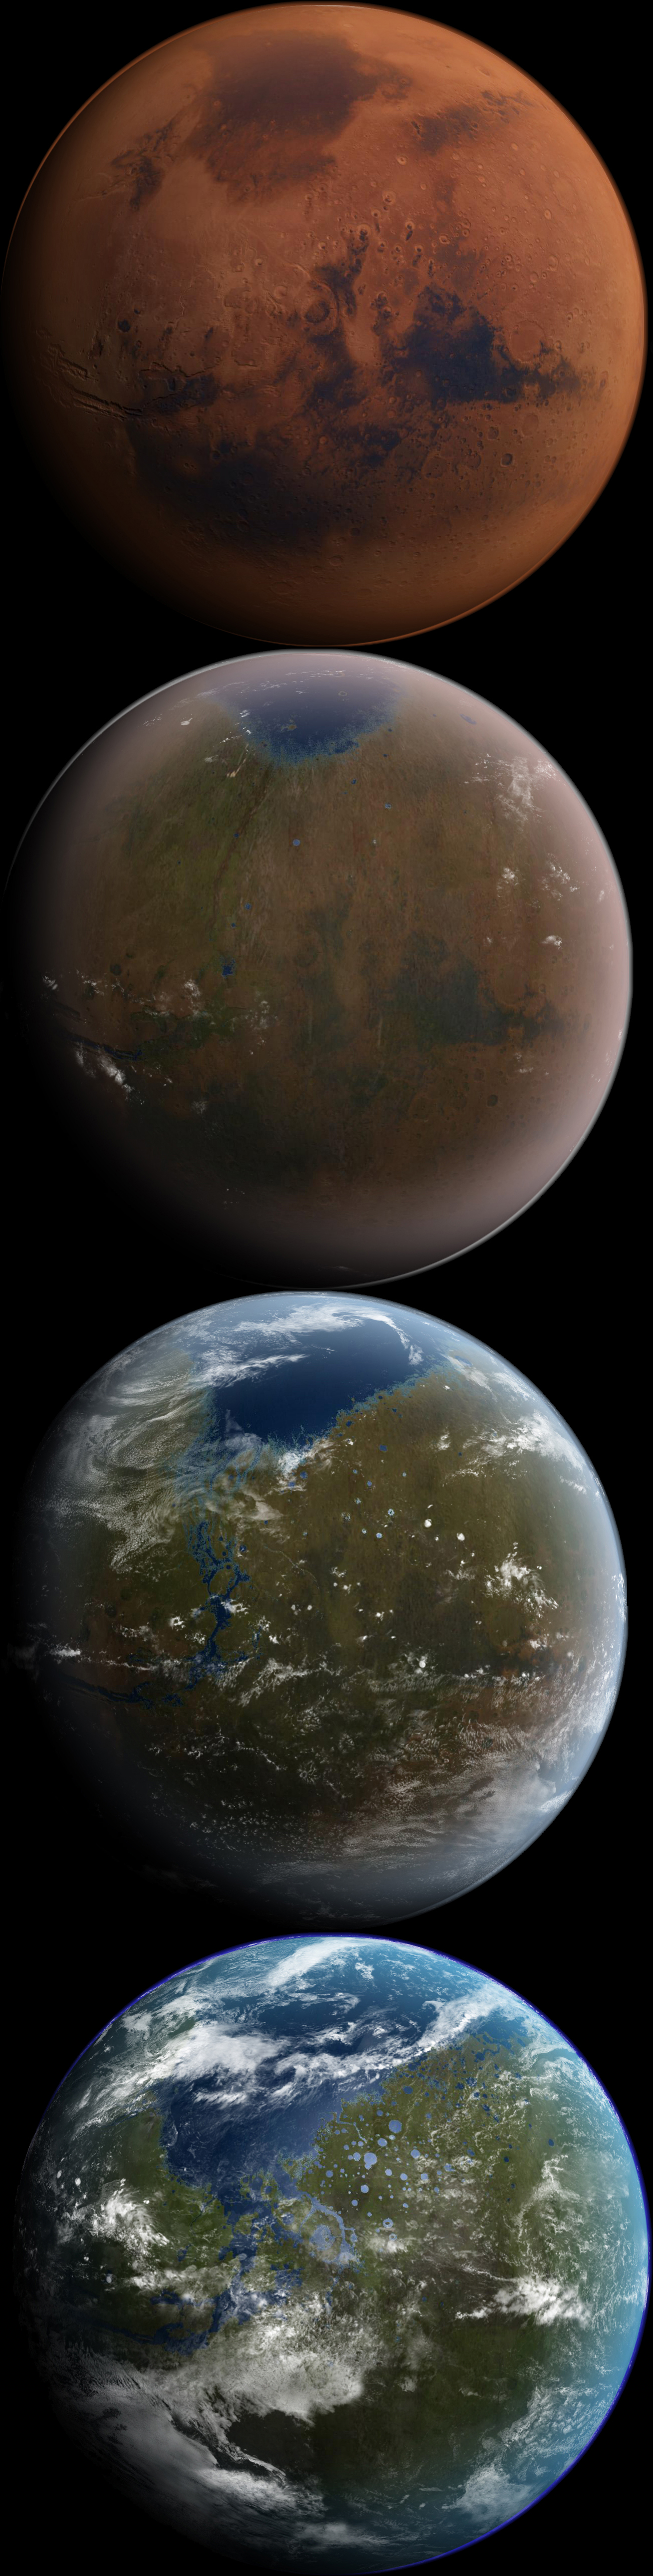 essay on astronomy terraforming mars this essay discusses the possible consequences writework copied from image marstransitionv jpg